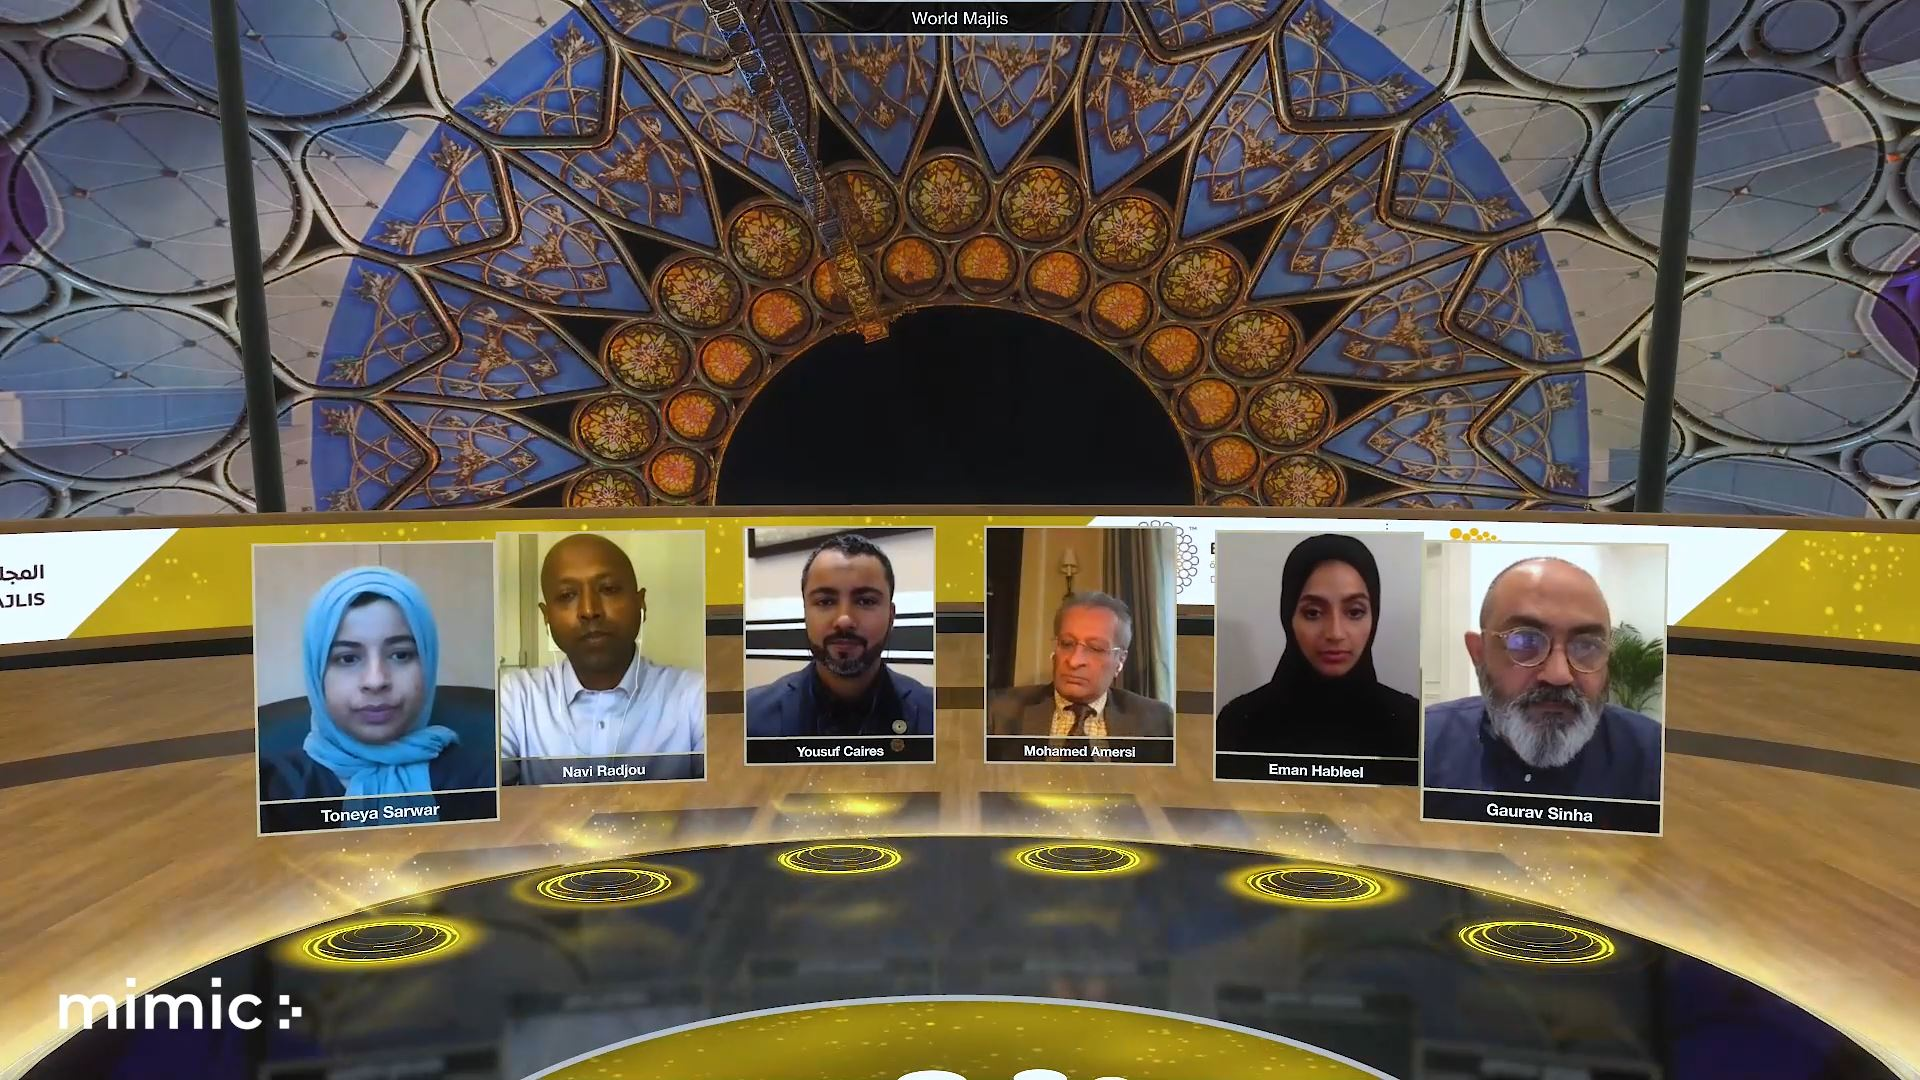 Expo 2020 Virtual event powered by mimic stage and eventagrate - main session panel discussion